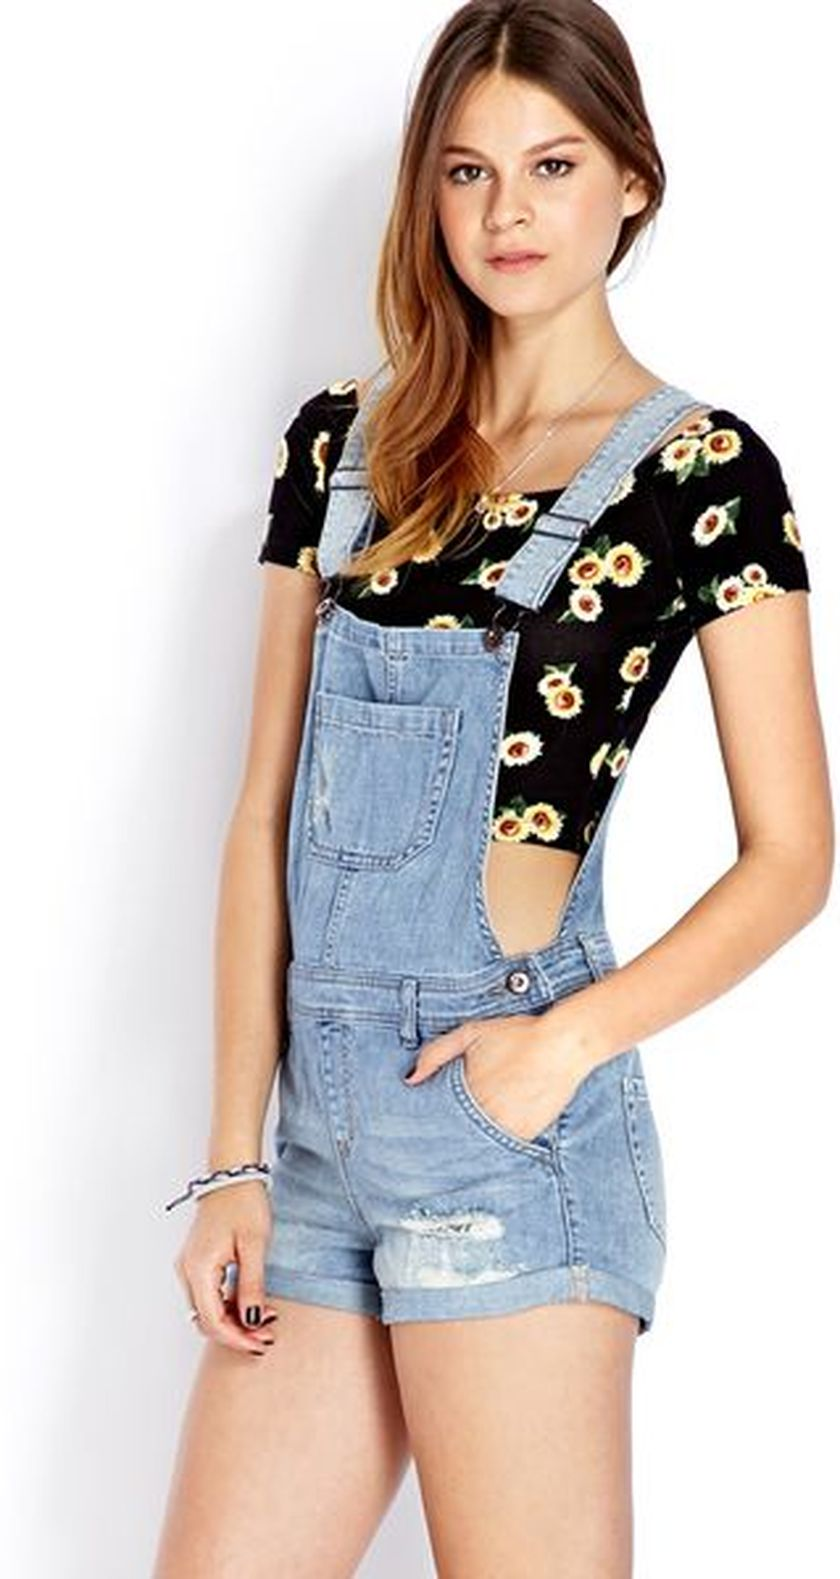 Denim overalls short outfit 99